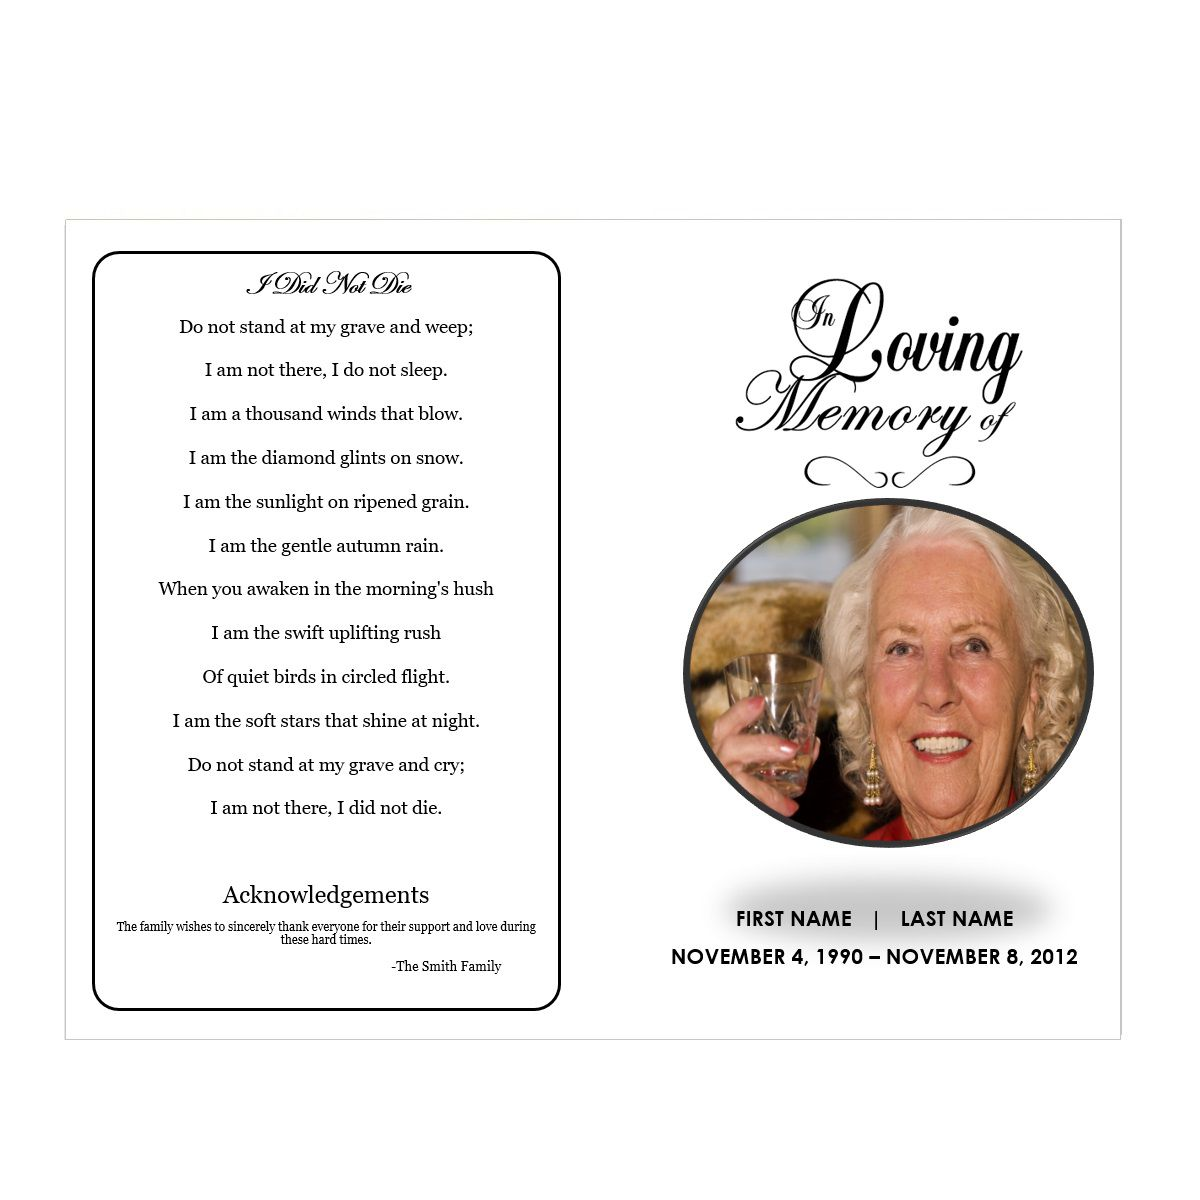 009 Unbelievable In Loving Memory Template Word Concept Full